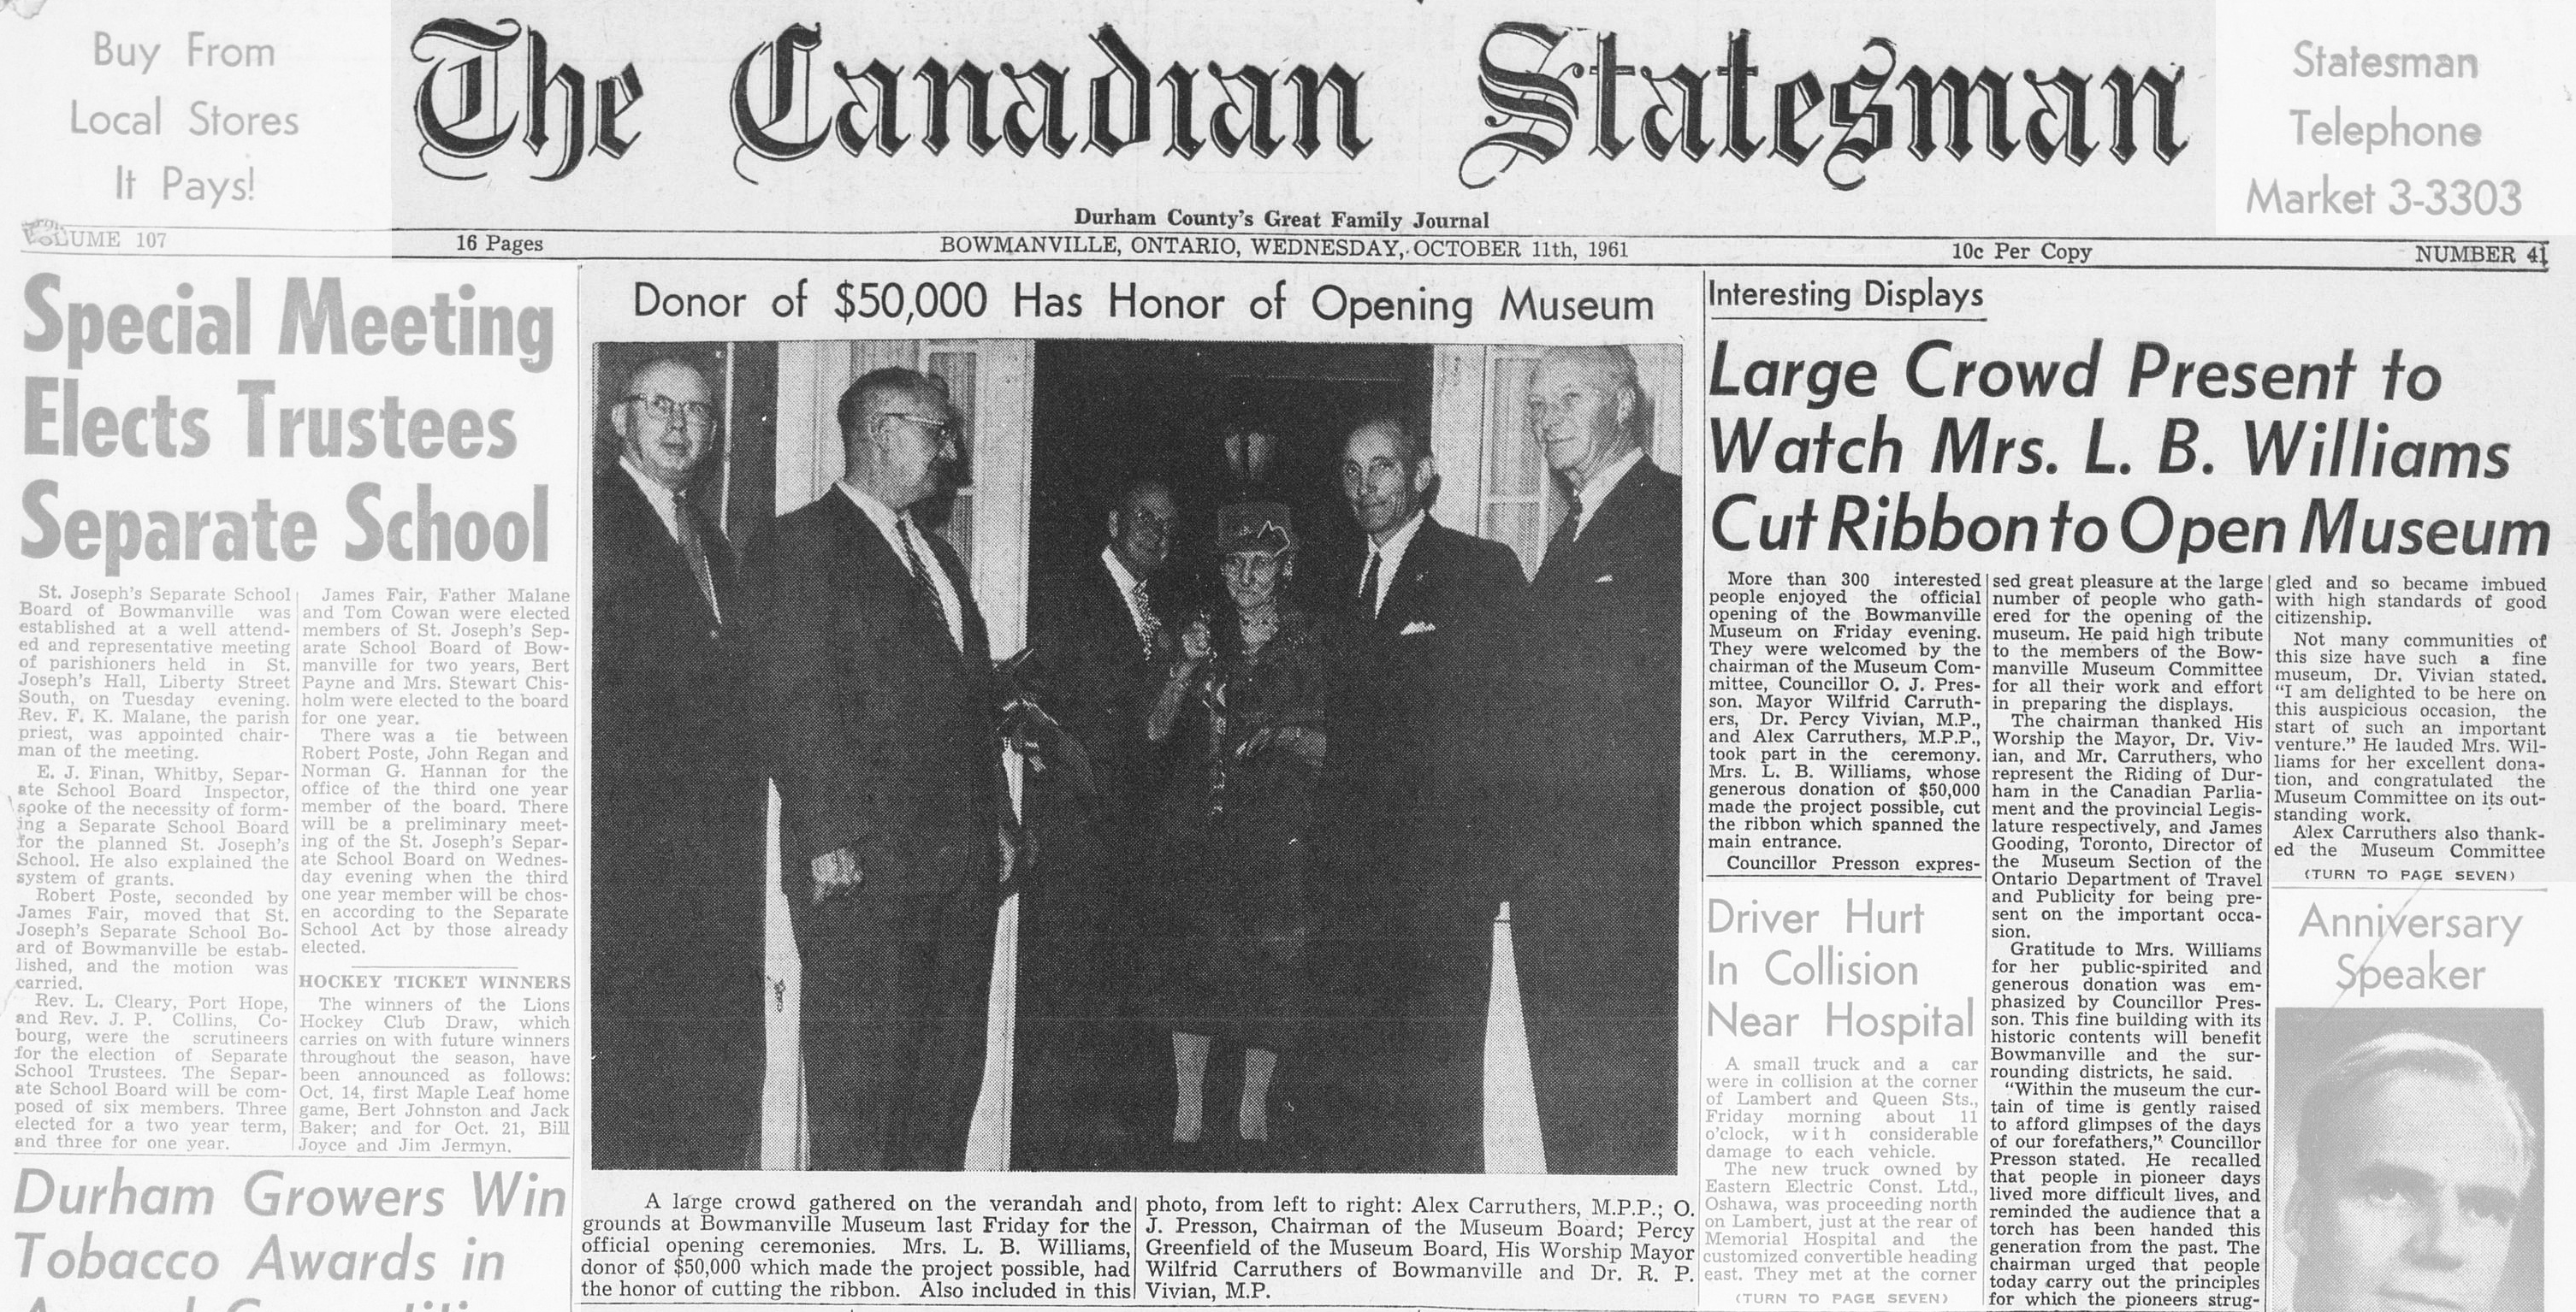 Canadian Statesman newspaper front page.